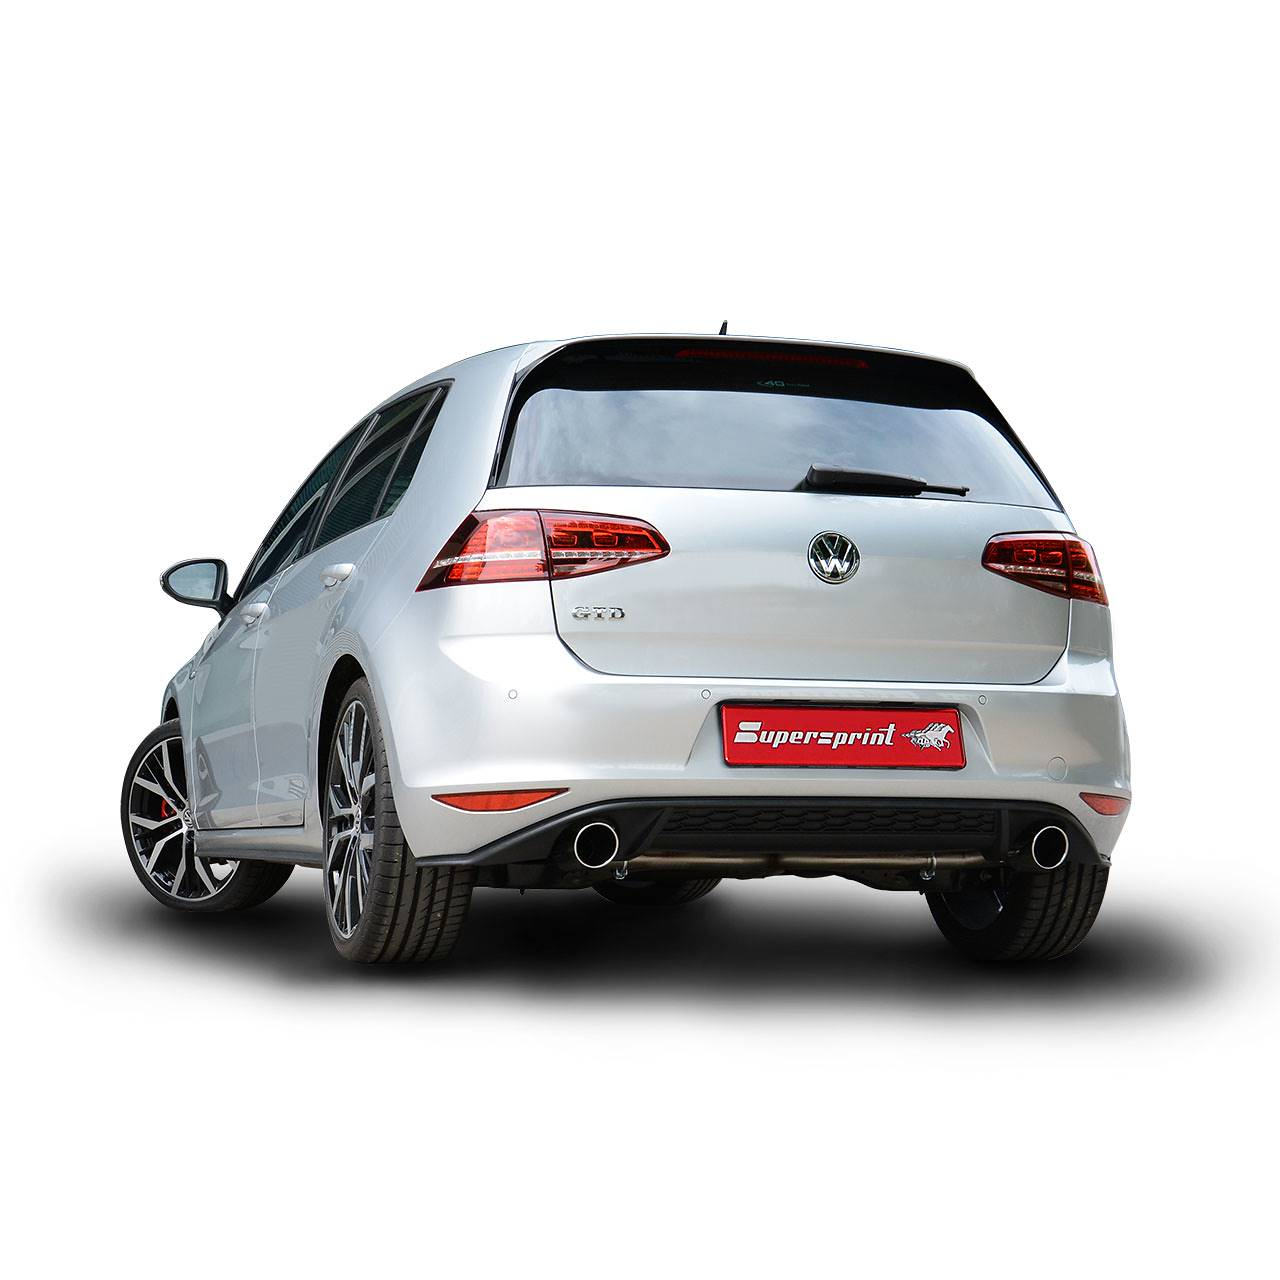 Volkswagen - VW GOLF VII GTD 2.0 (184 Hp) 2012 ->  (Sound Generator)